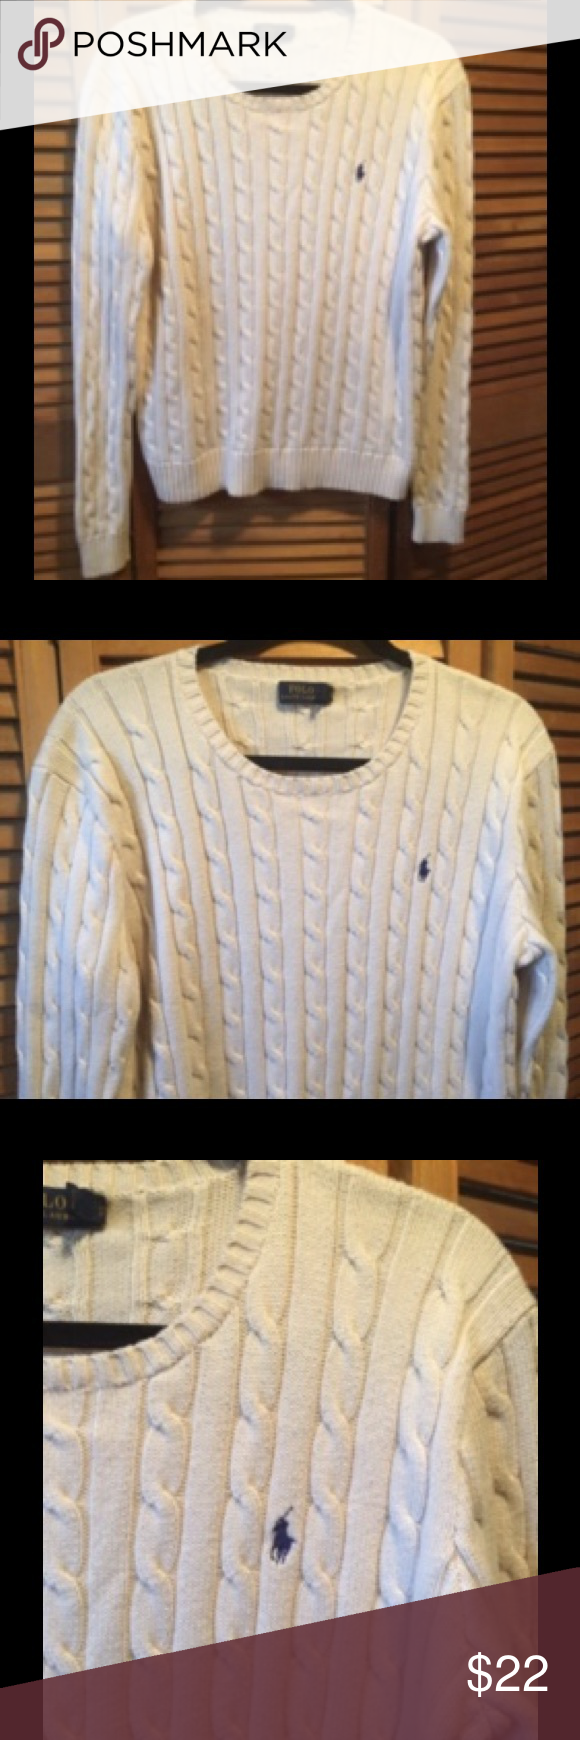 Ralph Lauren Cream Color Cable Knit Sweater | Cable knitting